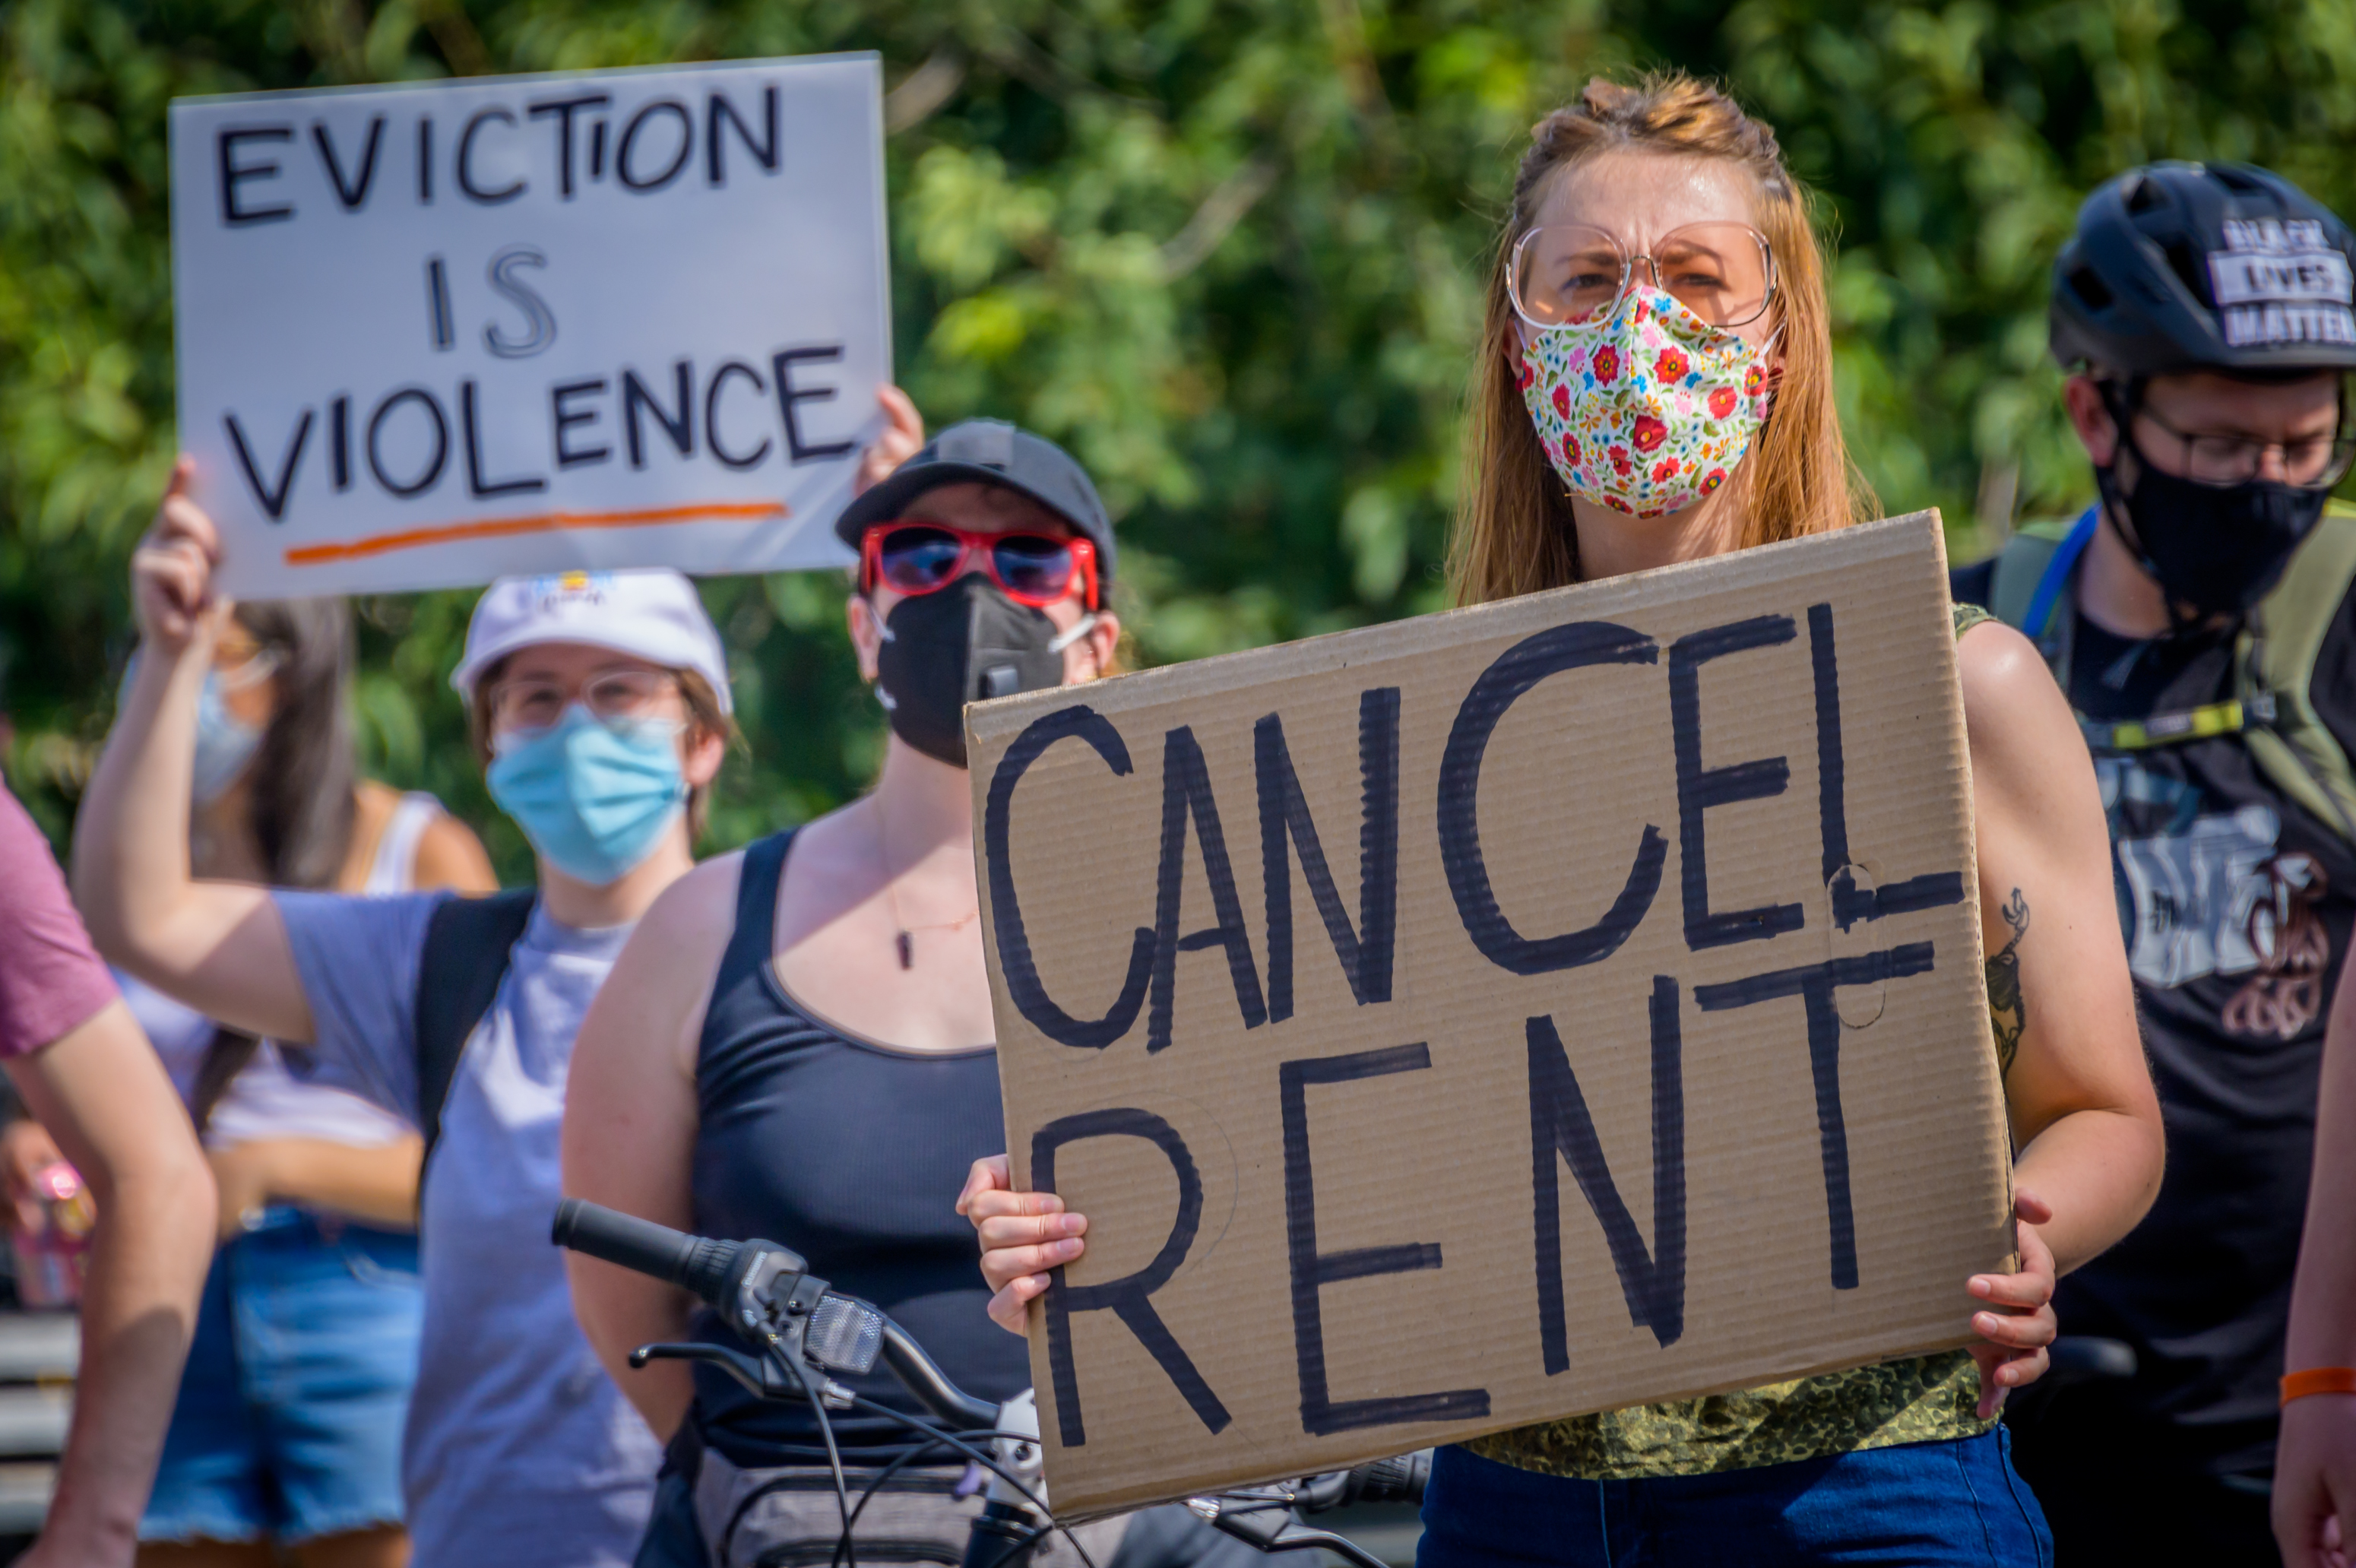 """Two protestors hold signs that read, """"Cancel Rent"""" and """"Eviction Is Violence"""" at a protest in Brooklyn."""